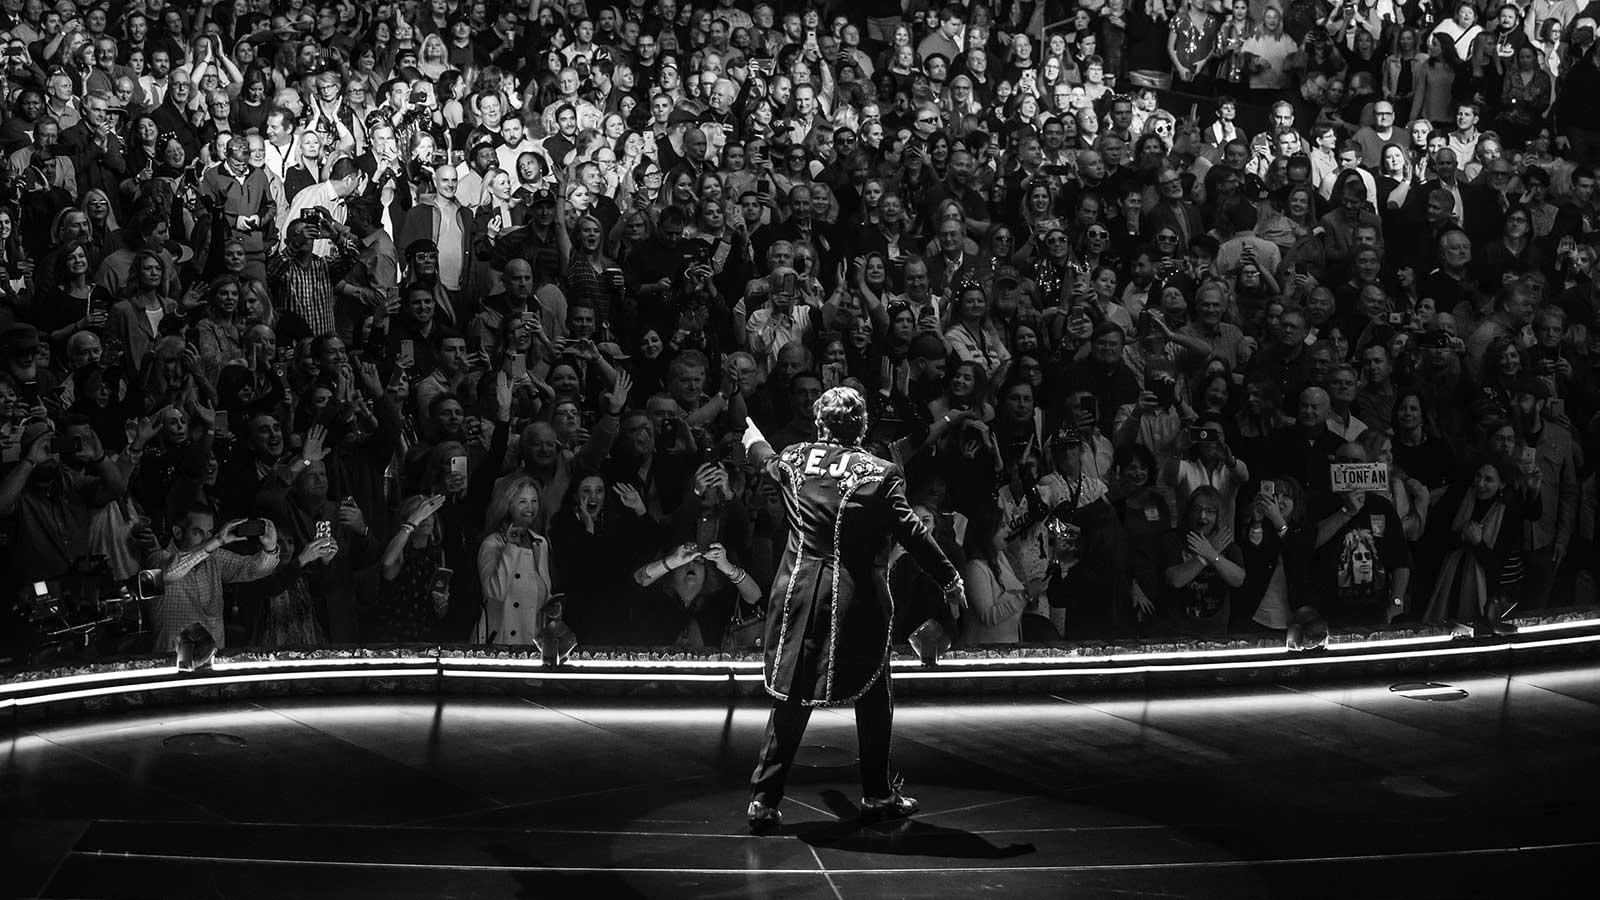 Black and white photograph of Elton John in front of a large crowd